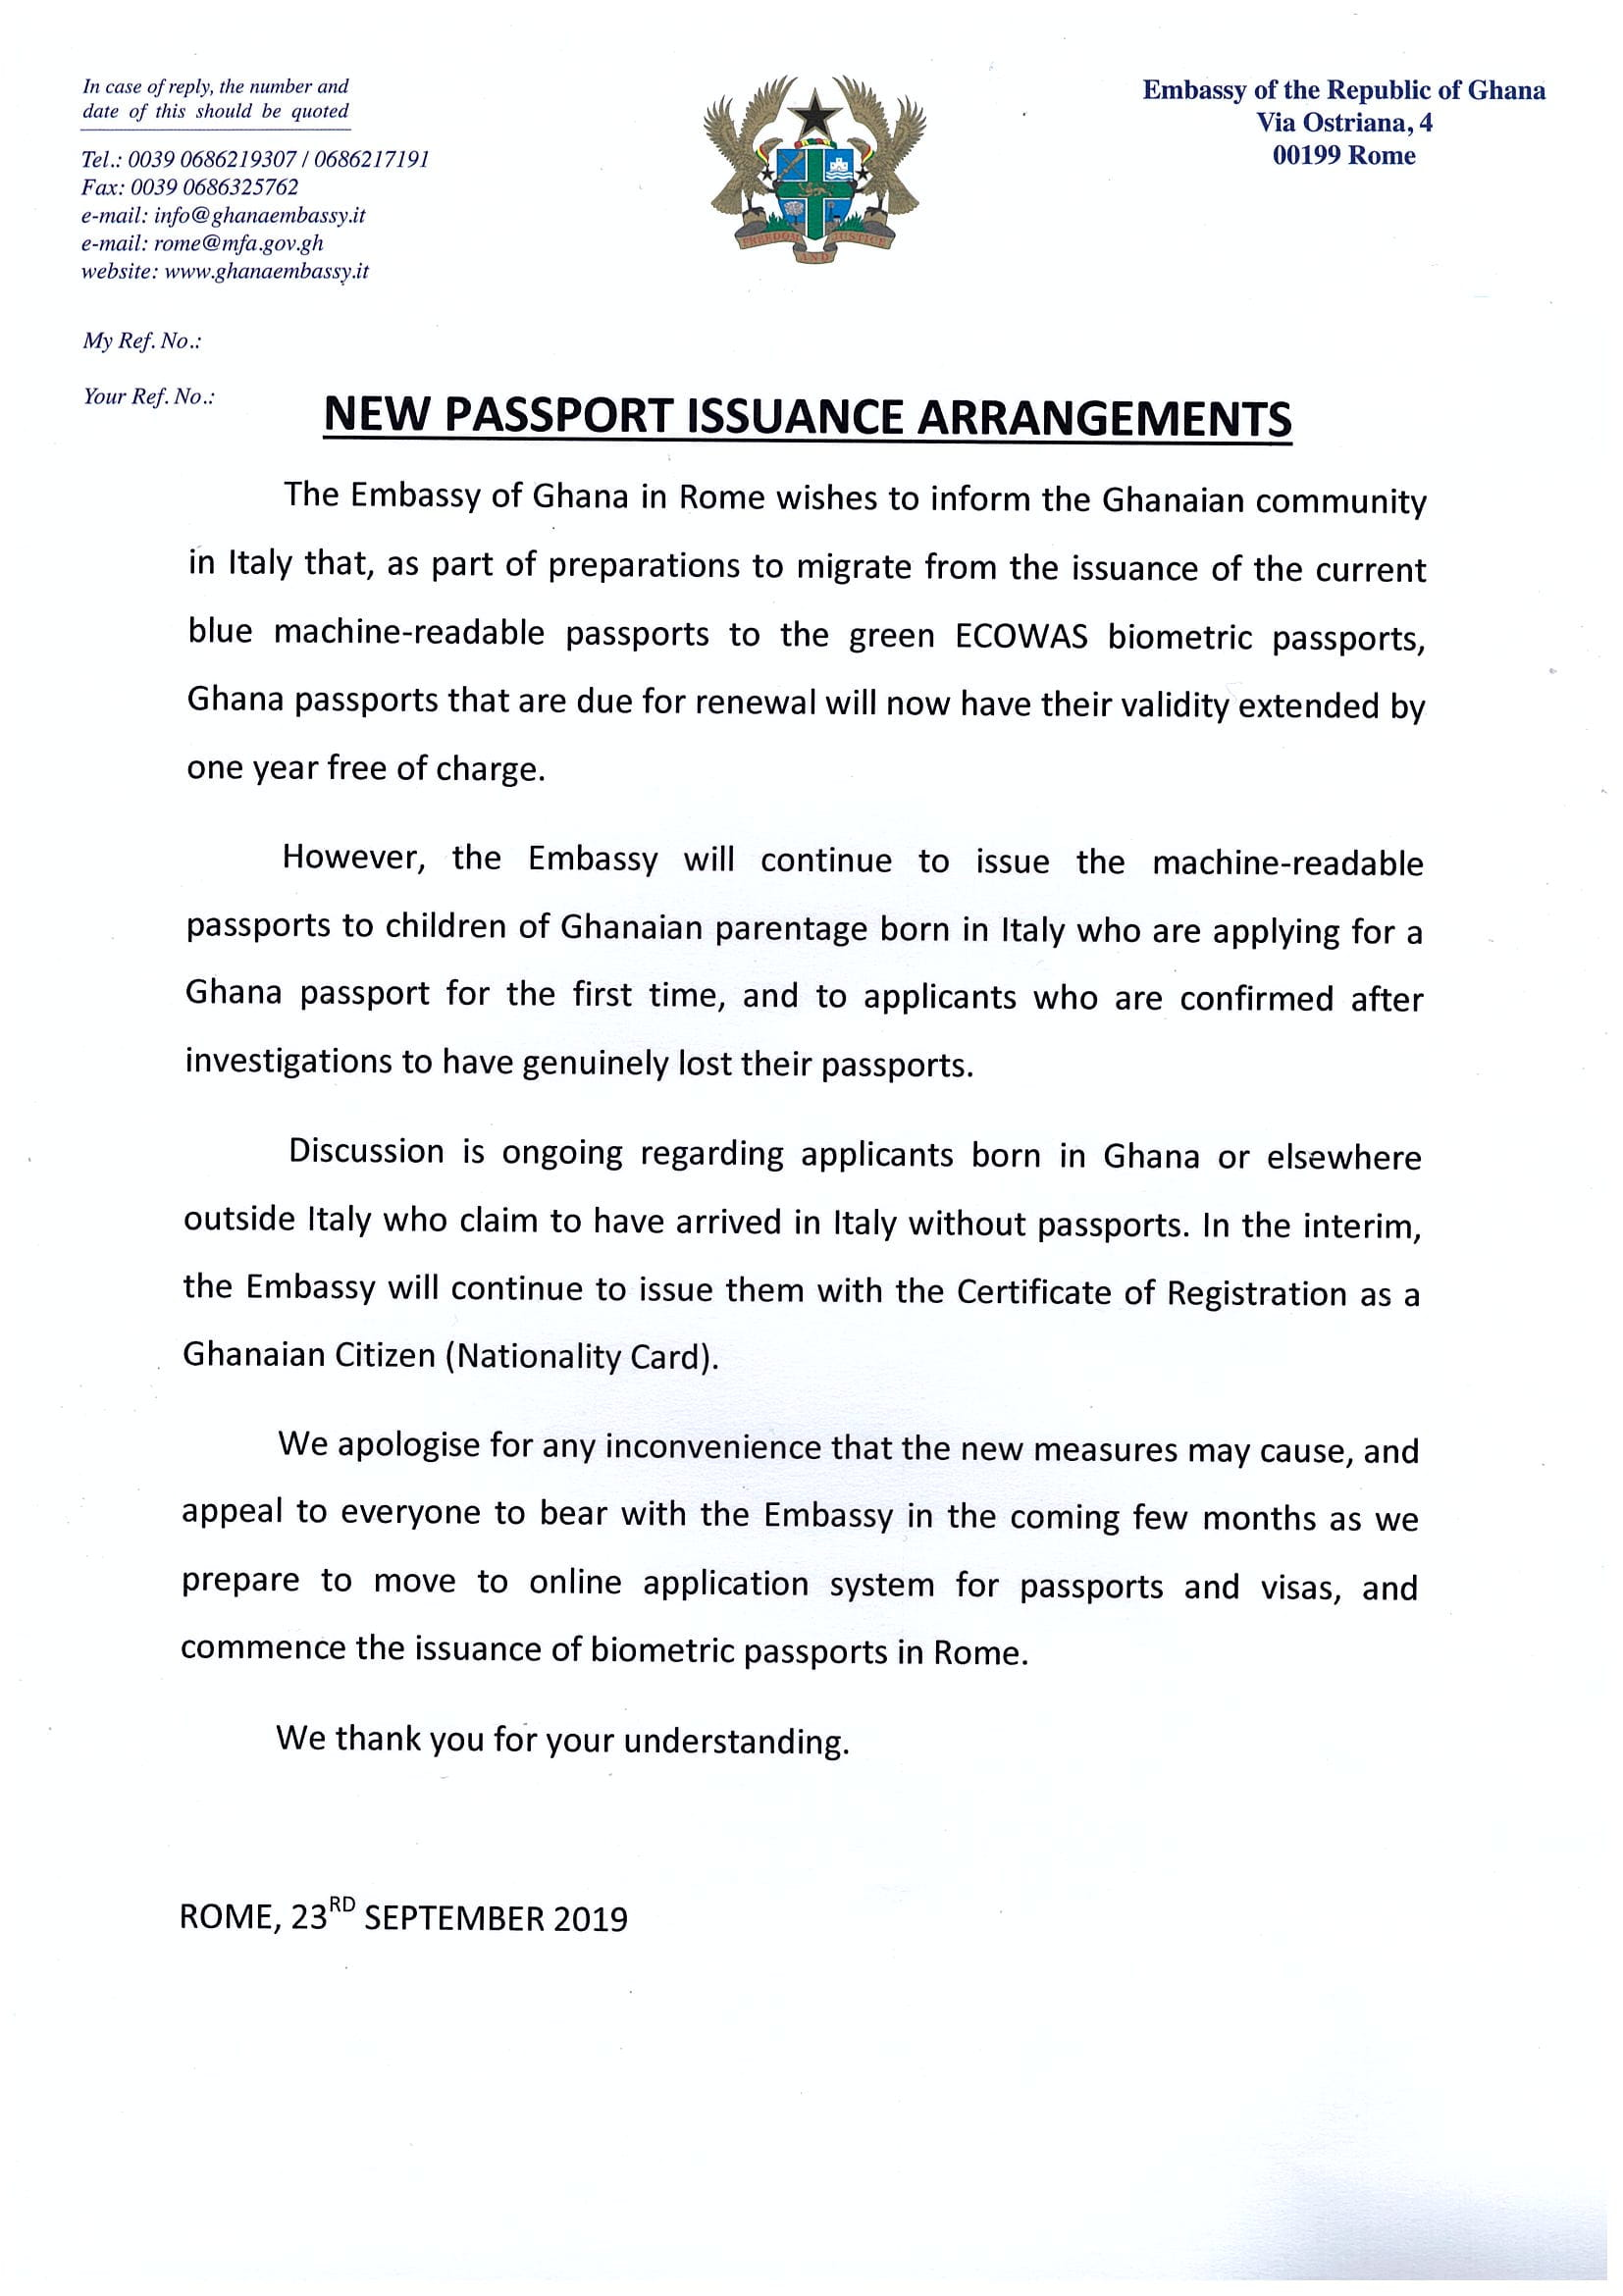 NewPassportIssuanceArrangements